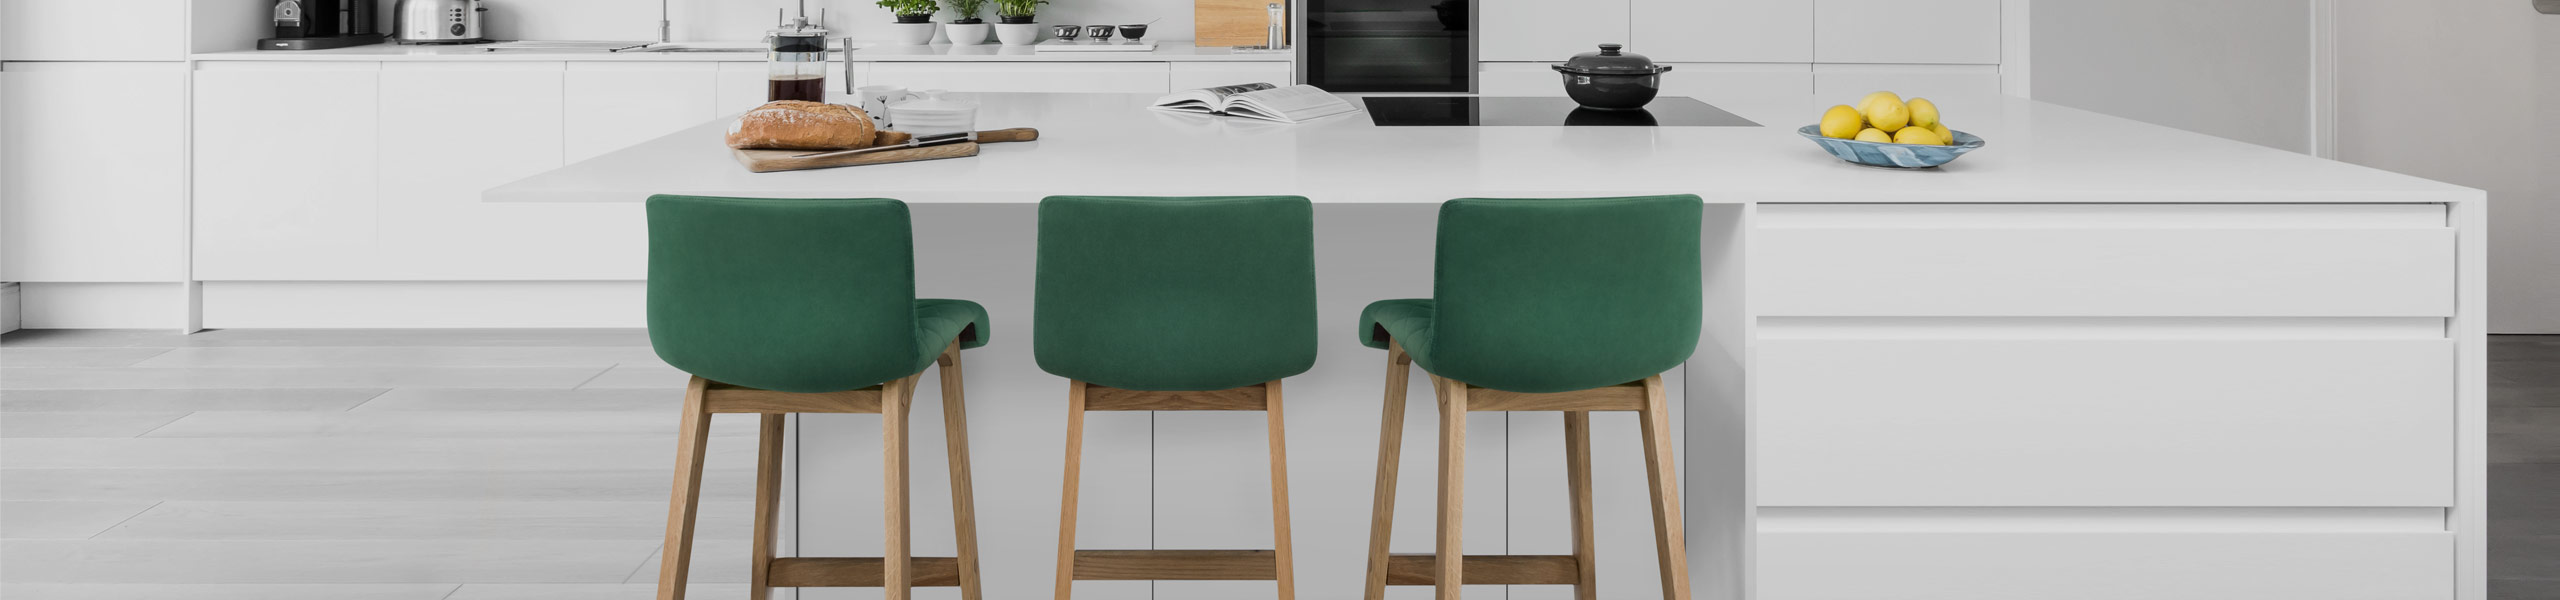 Colt Oak Stool Green Velvet Video Banner